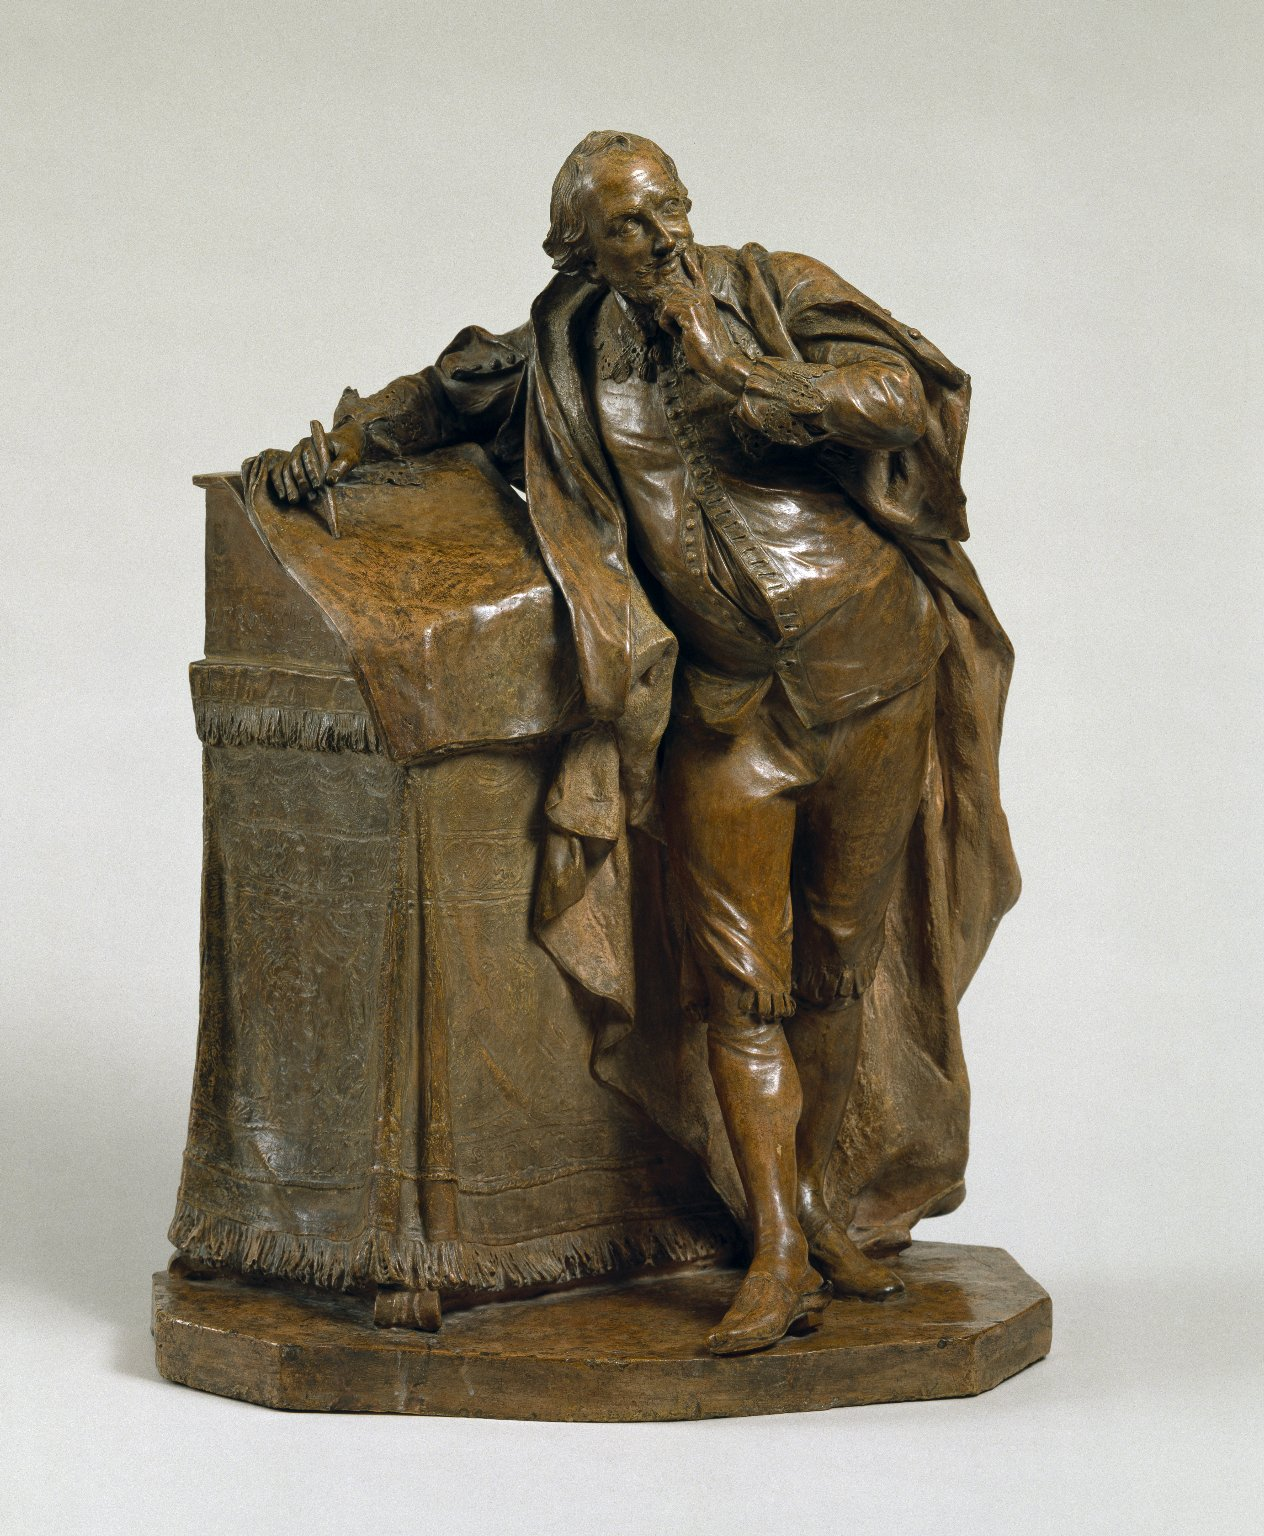 Sculpture of Shakespeare: Study for statue for David Garrick's Shakespeare Temple.